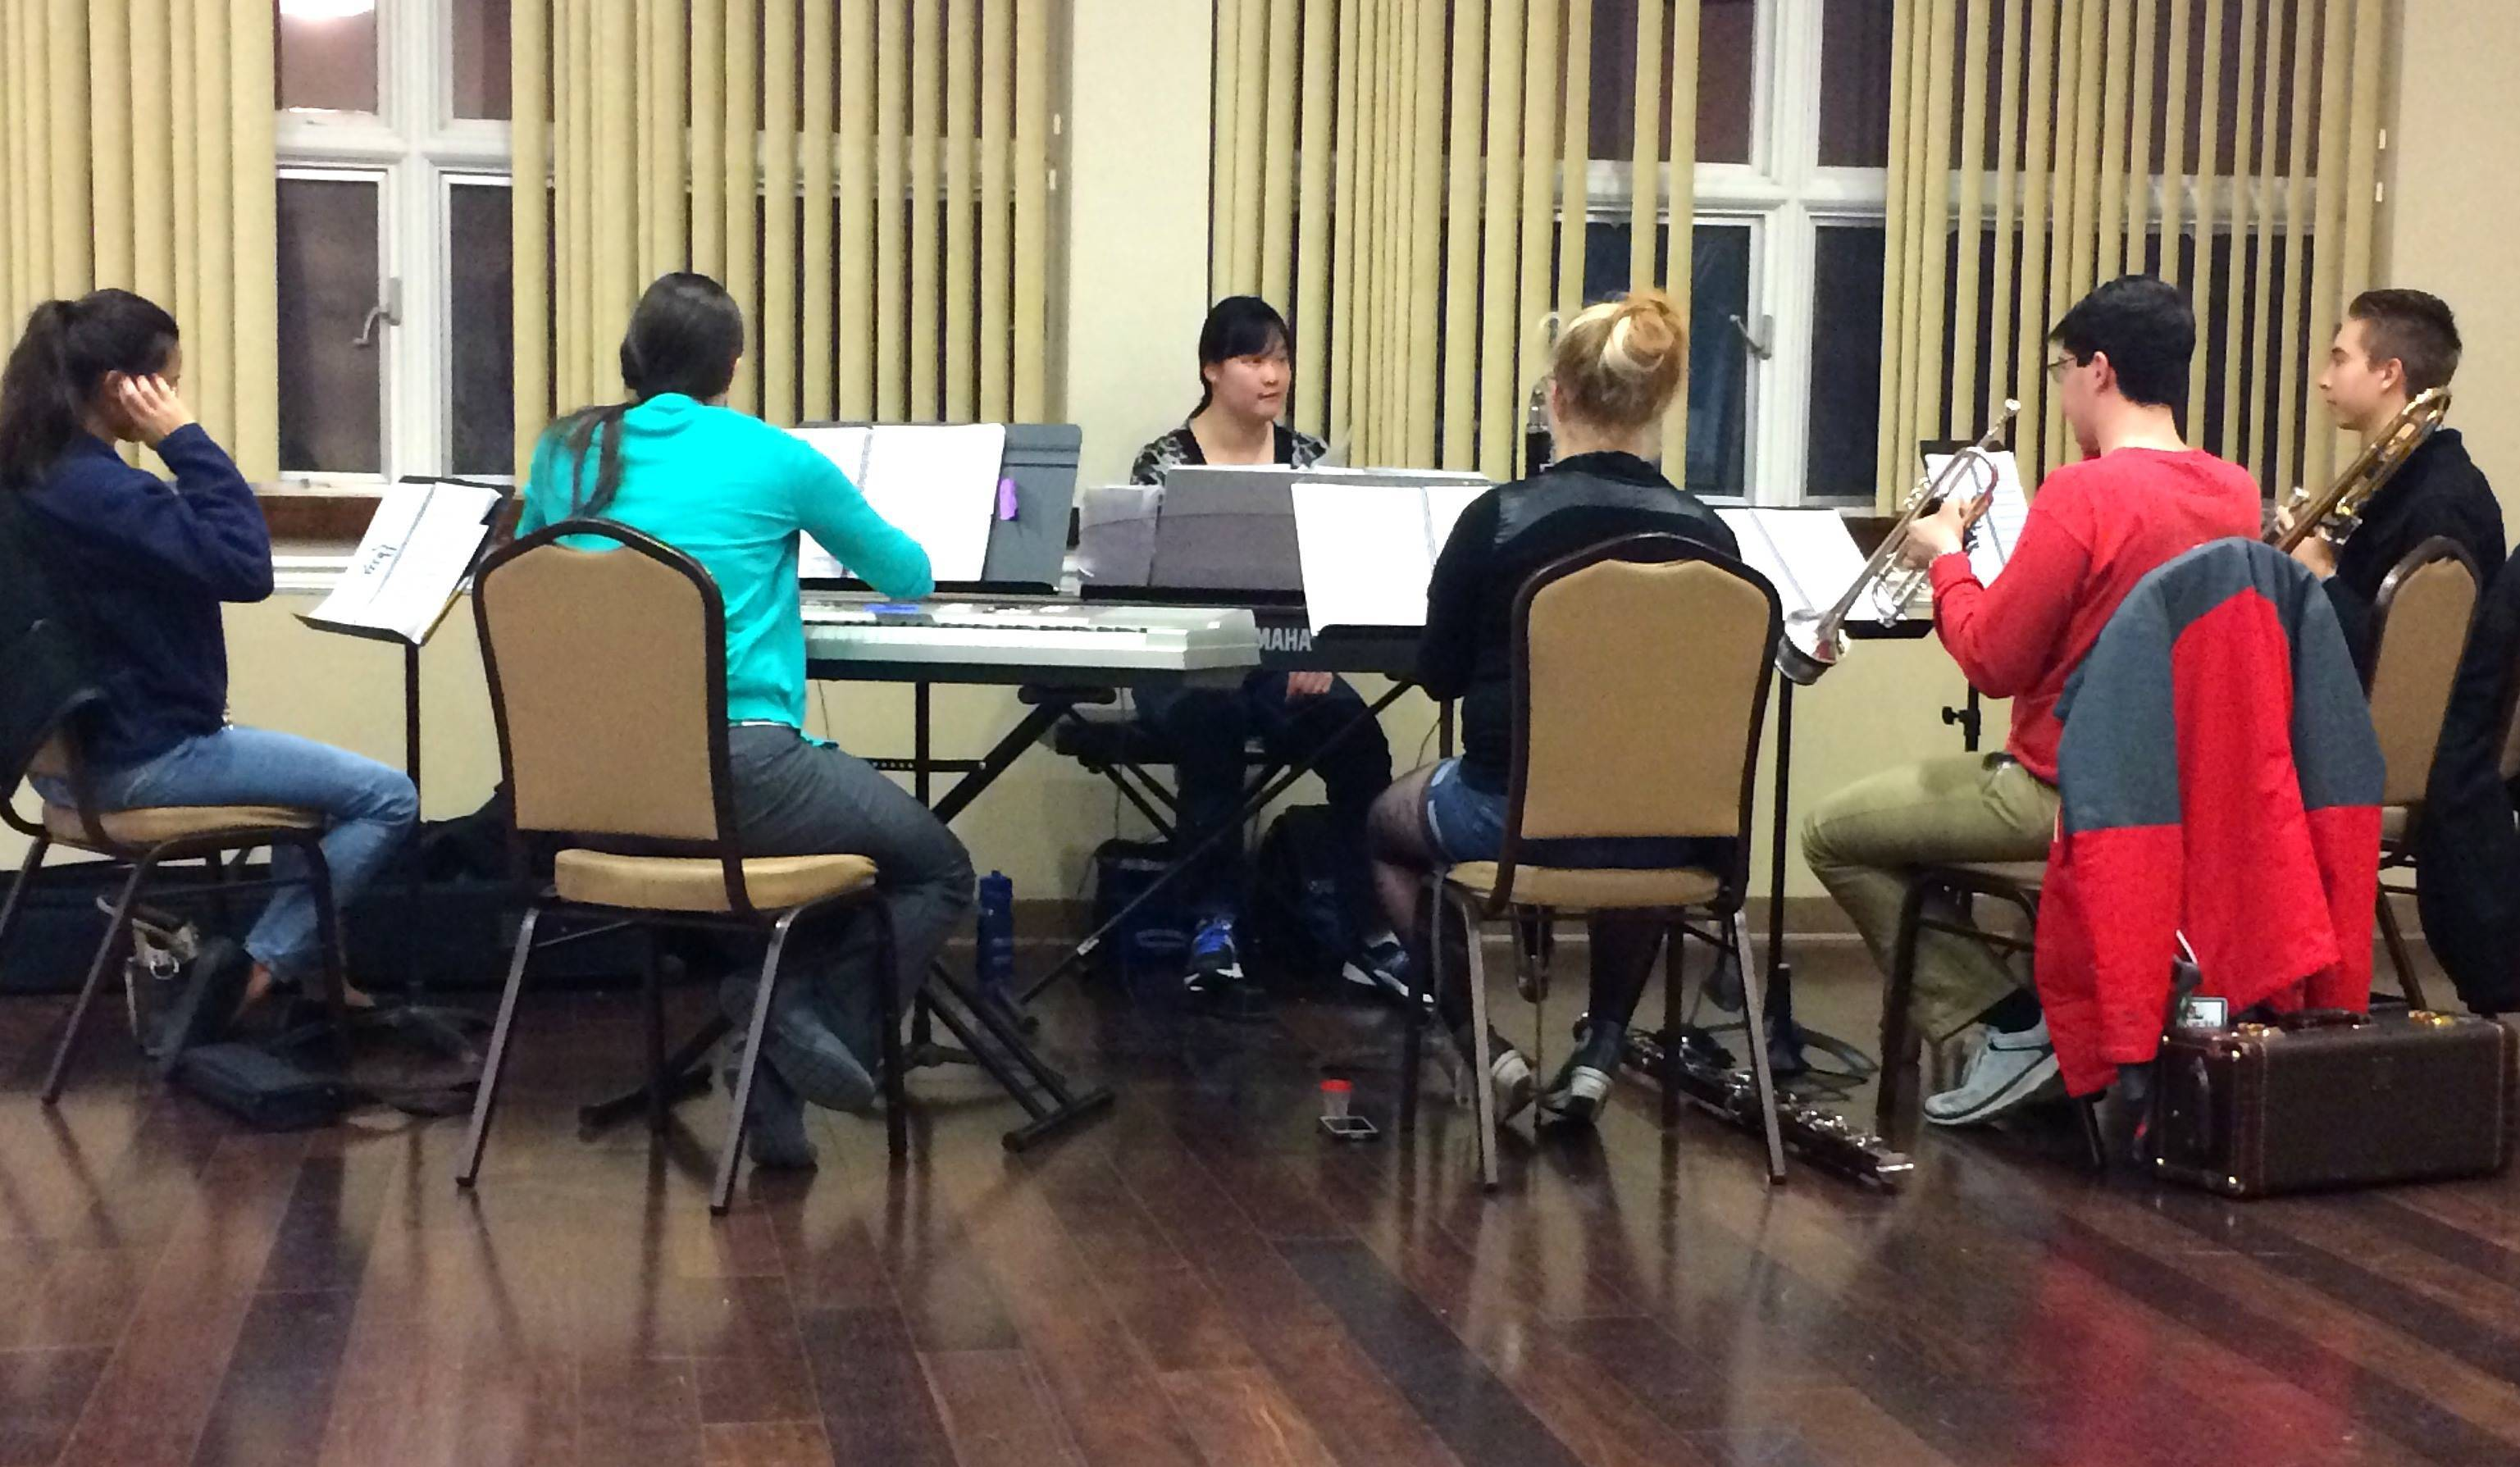 6a557a880c9a5a5fa409_peter_pan_band_practice.jpg